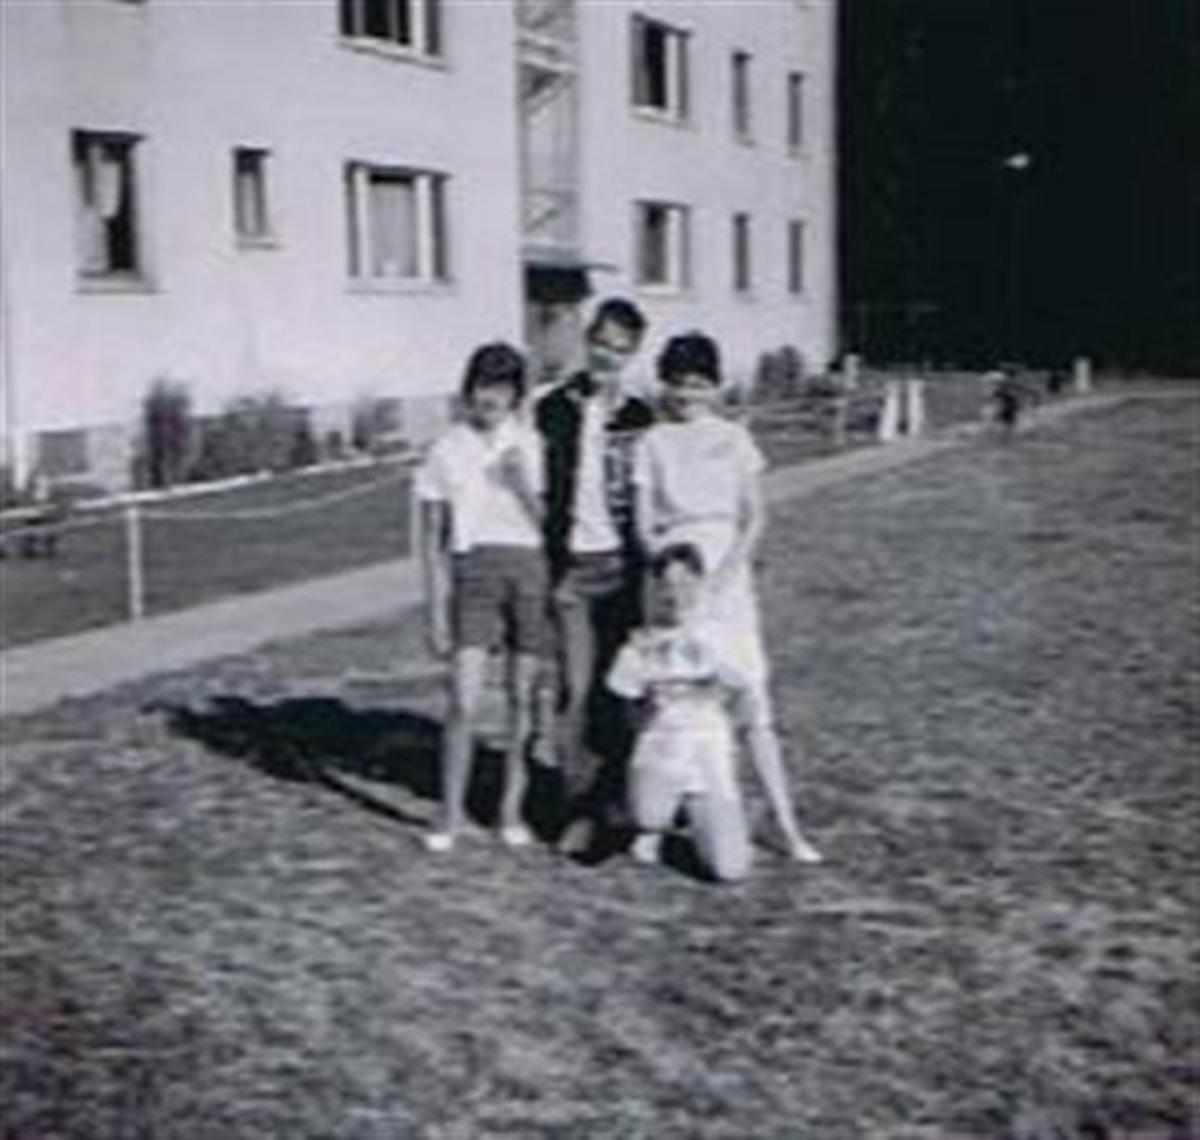 Kathy Picorozzi, Pete Blackburn, Mary Poole,and me in front.Of Mary's Building.